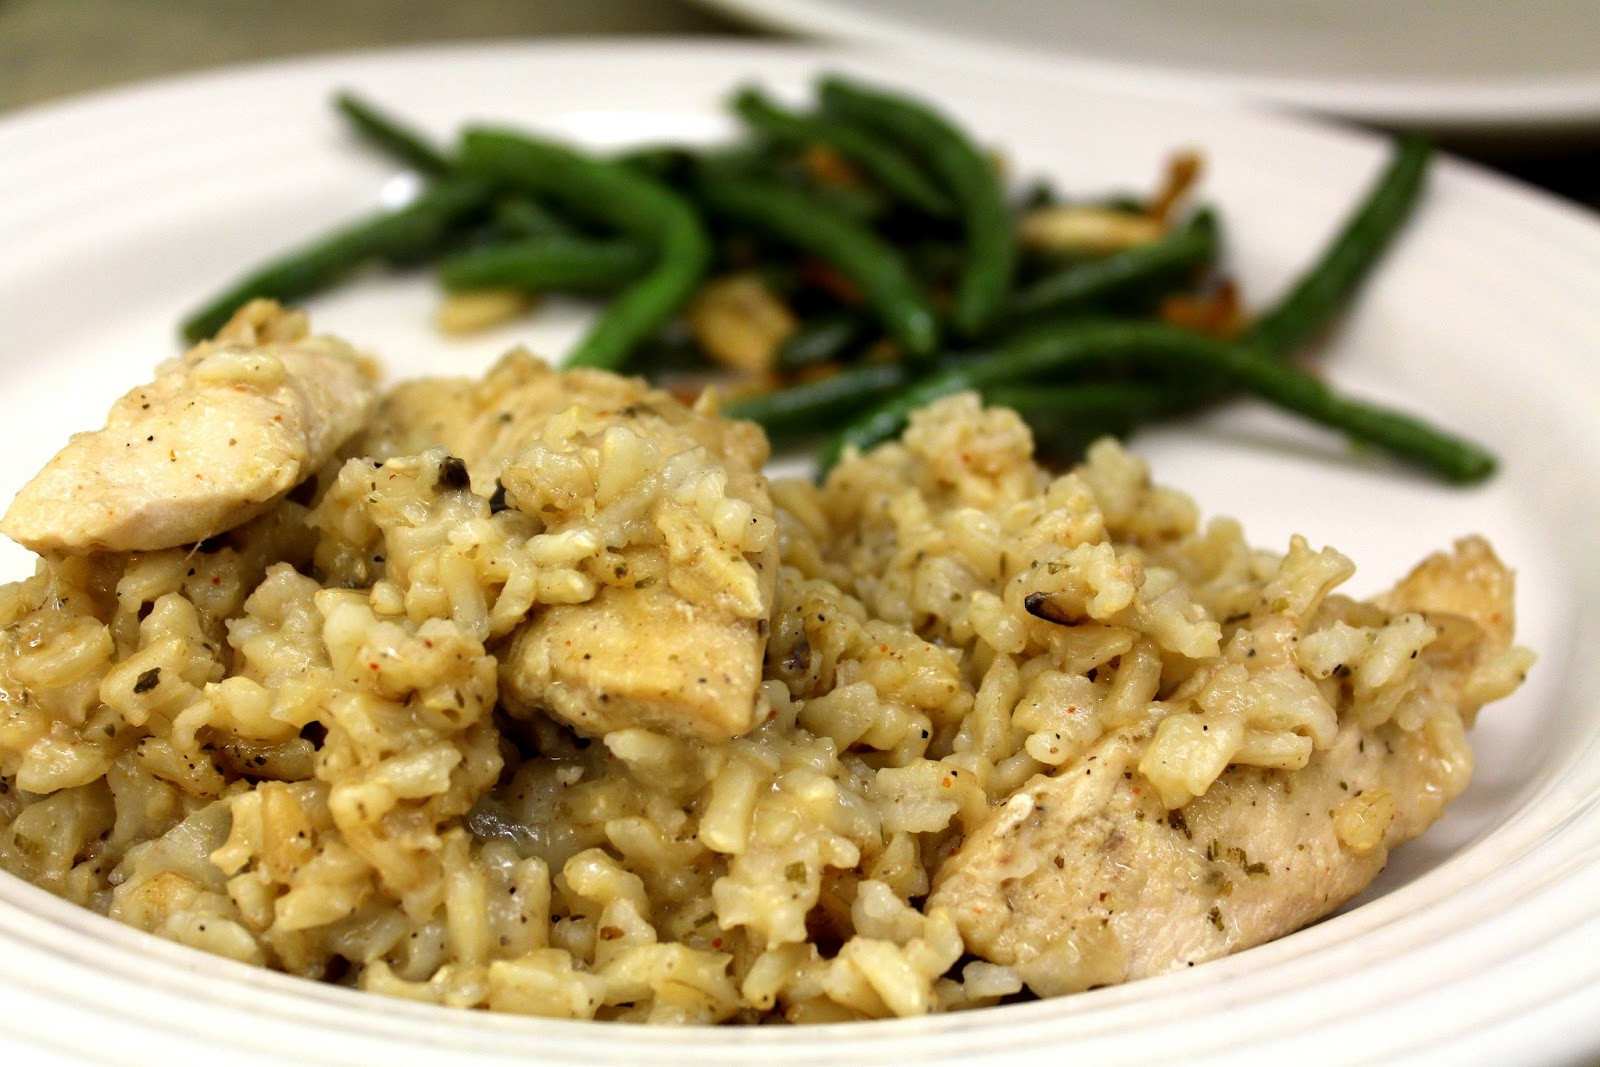 Dairy Free Chicken And Rice Casserole  Busy Girl Recipes Chicken and Rice Casserole with Almond Milk